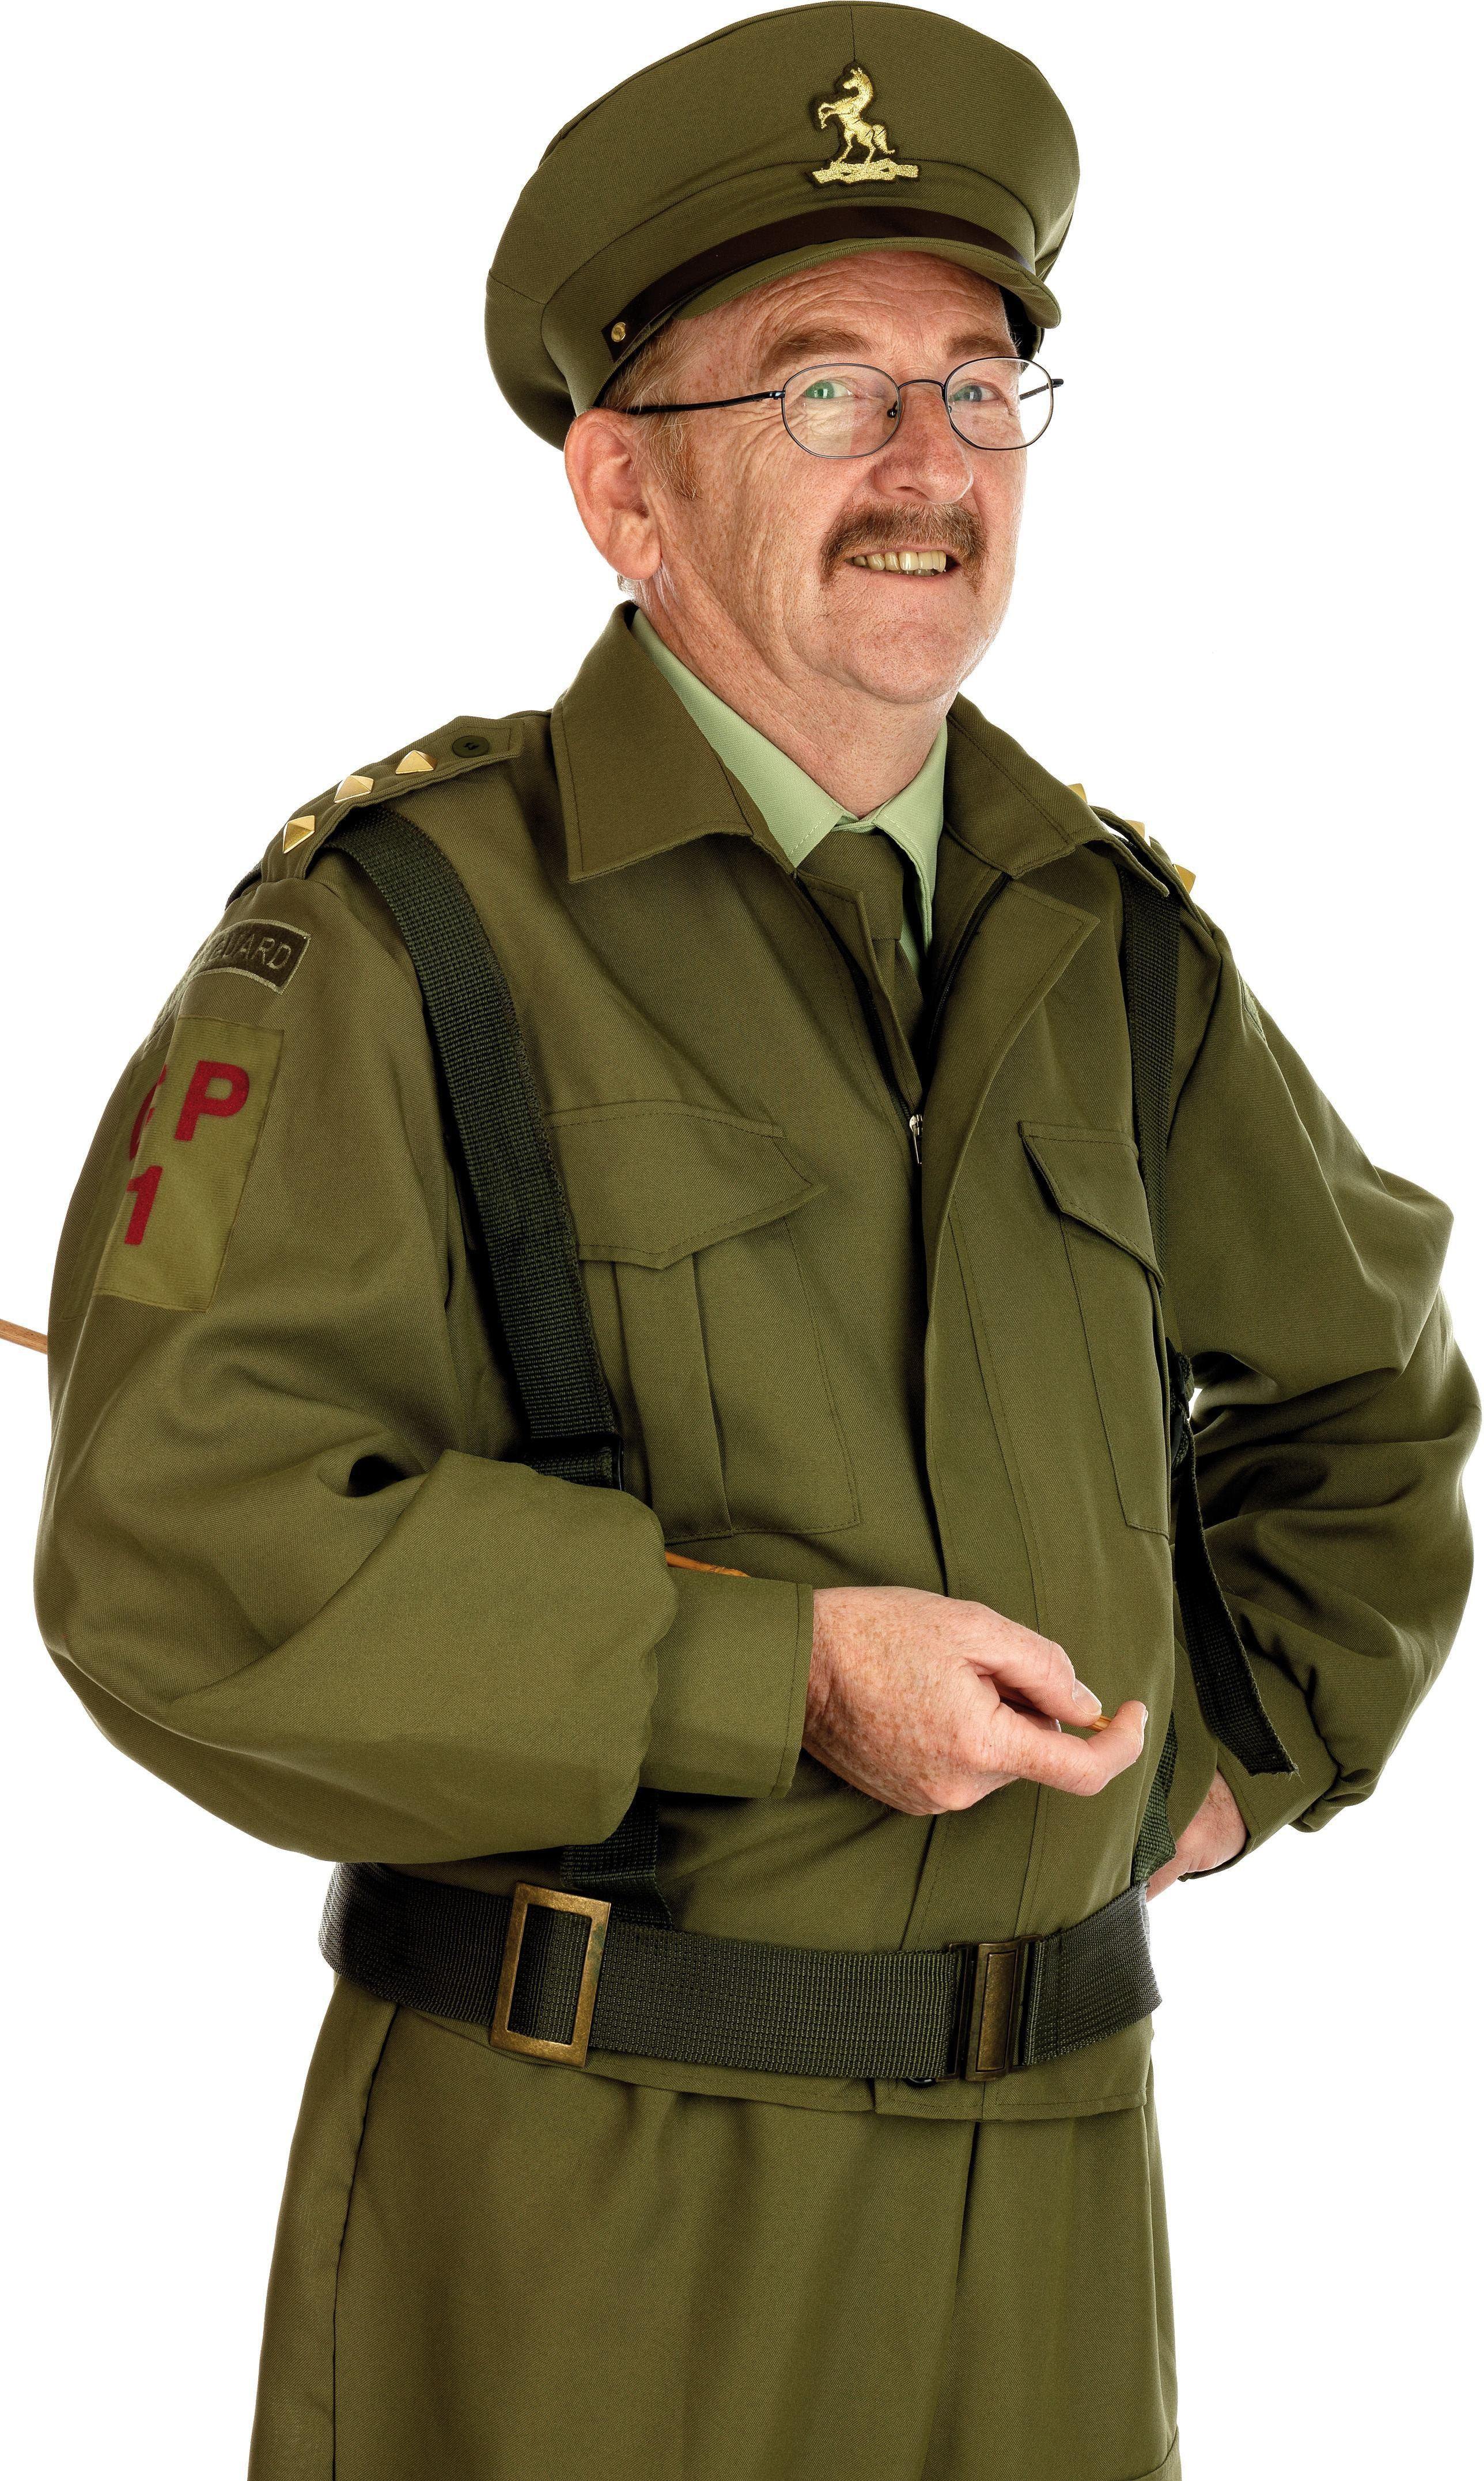 British Home Guard Officer Costume Fancy Dress Costume (Army)